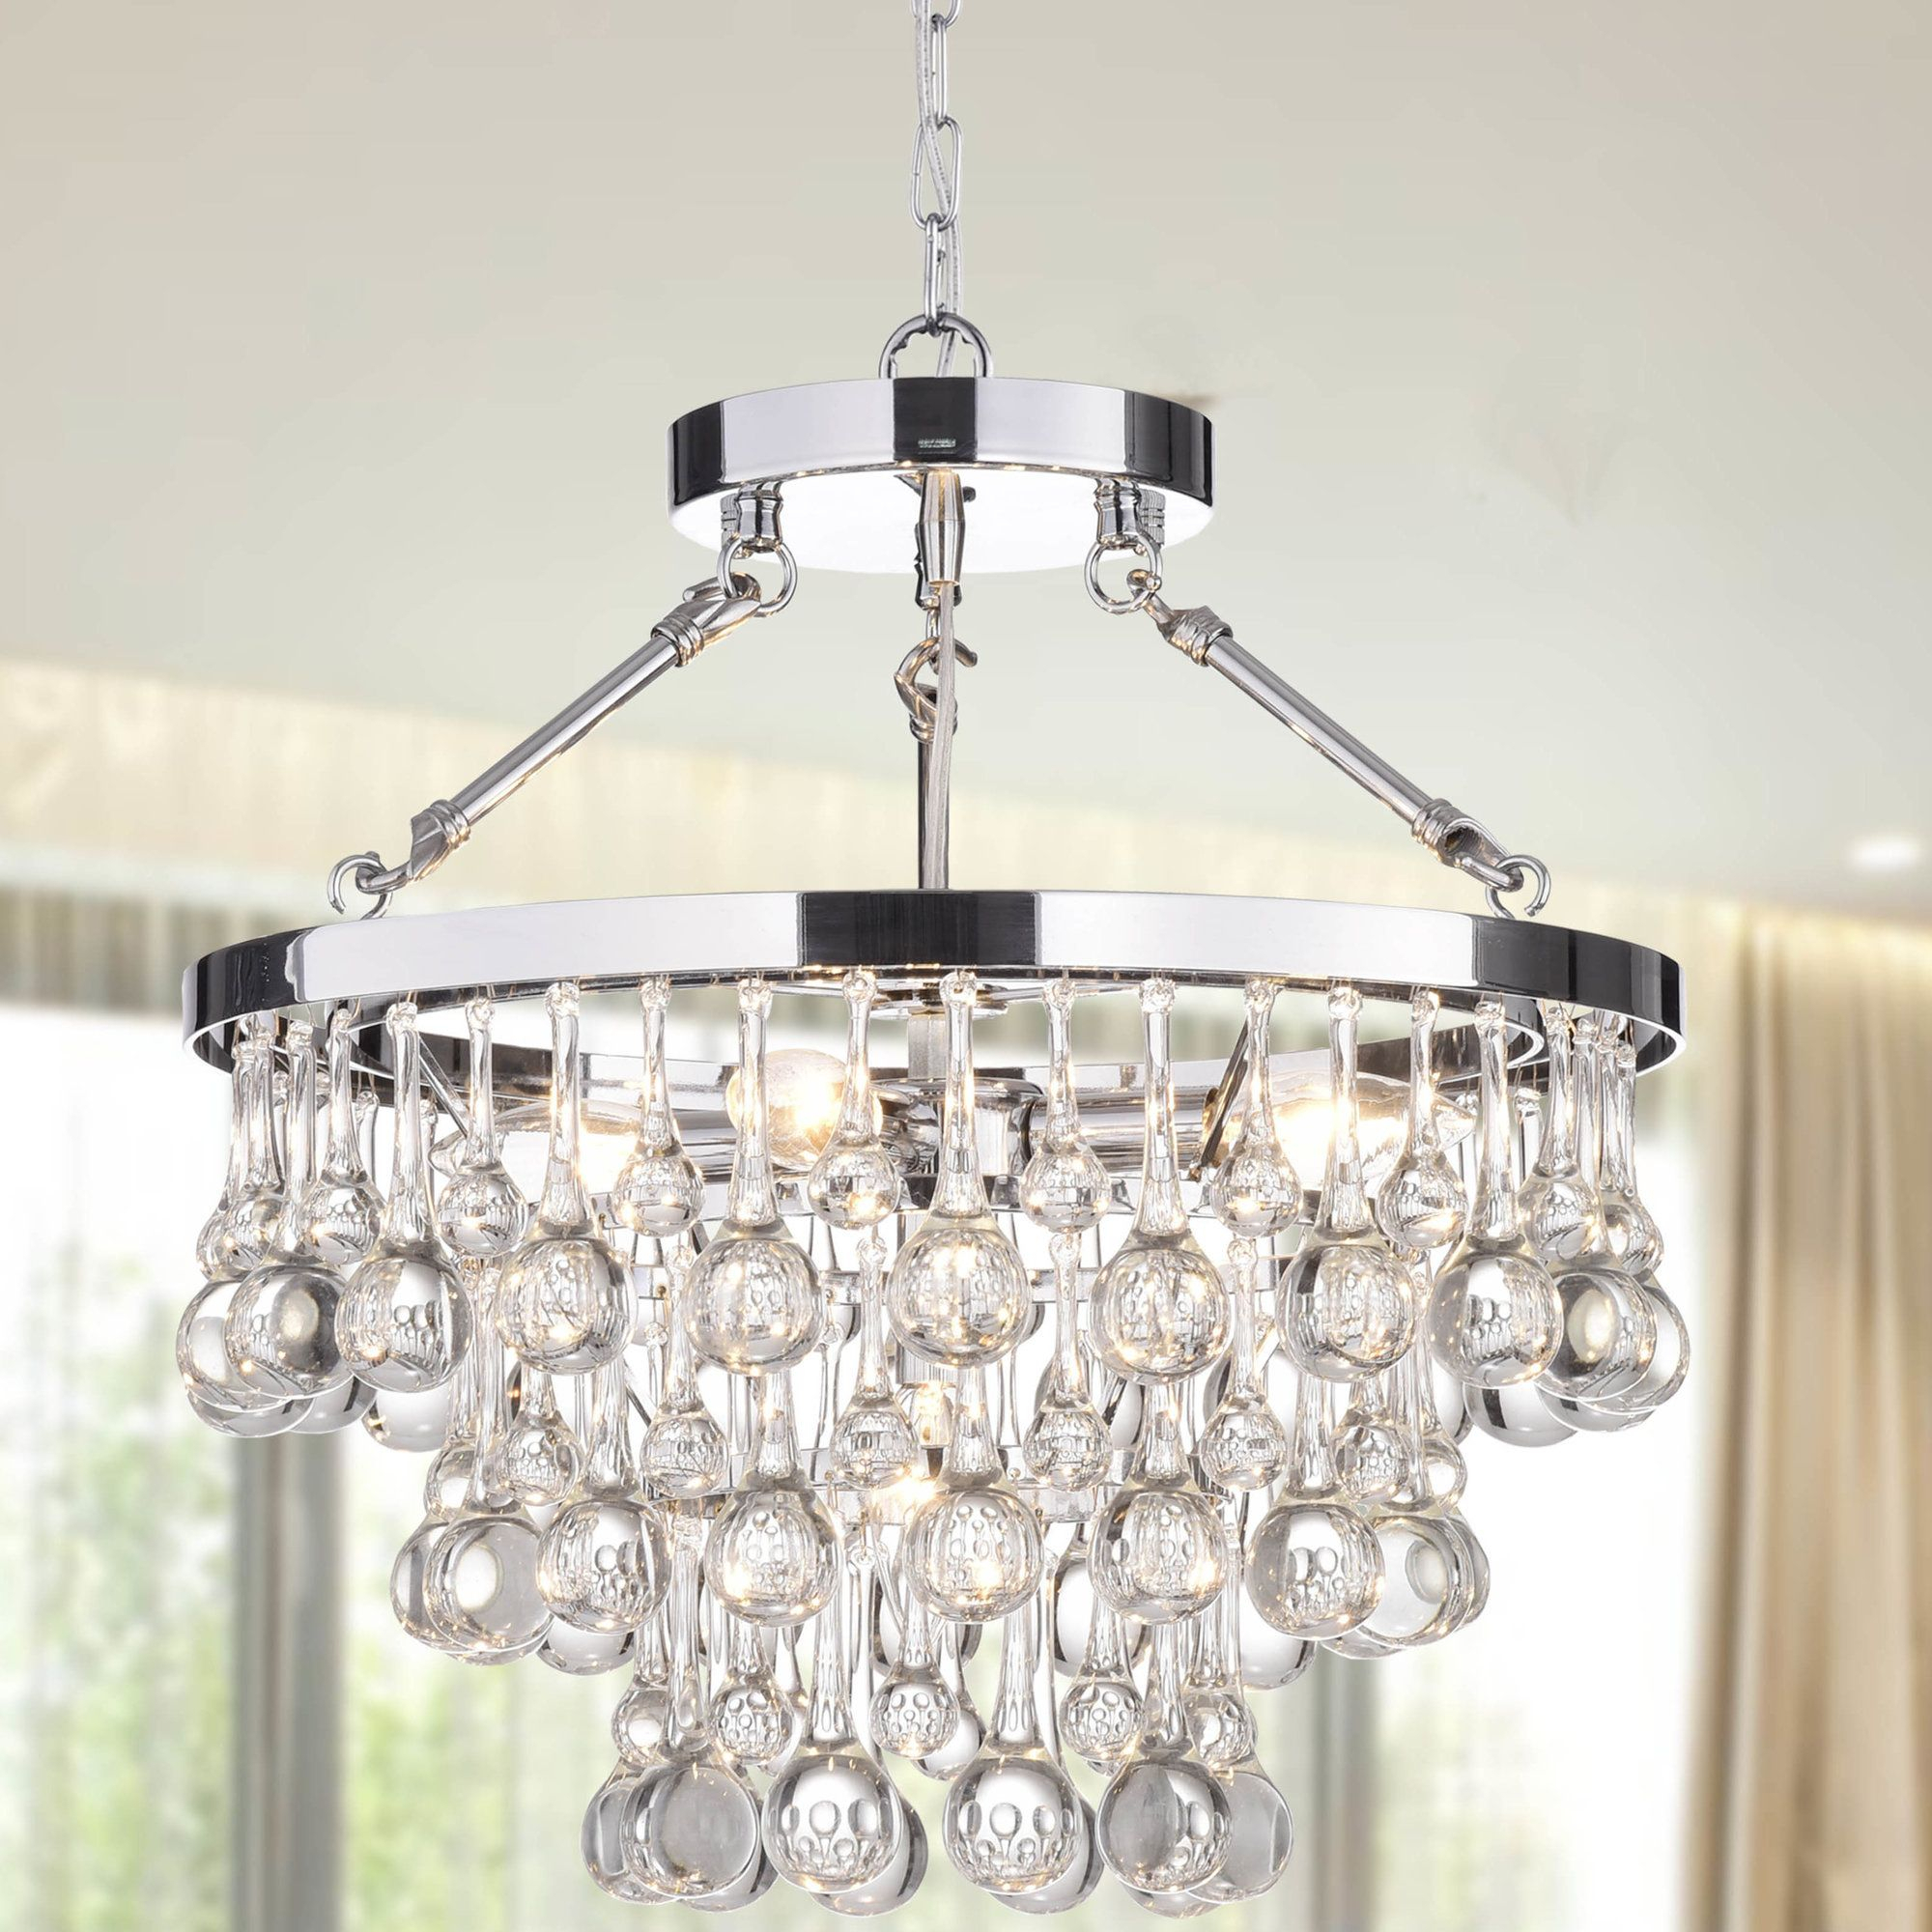 Koalemos 5 Light Crystal Chandelier | Products | Chandelier Throughout Verdell 5 Light Crystal Chandeliers (Photo 4 of 30)